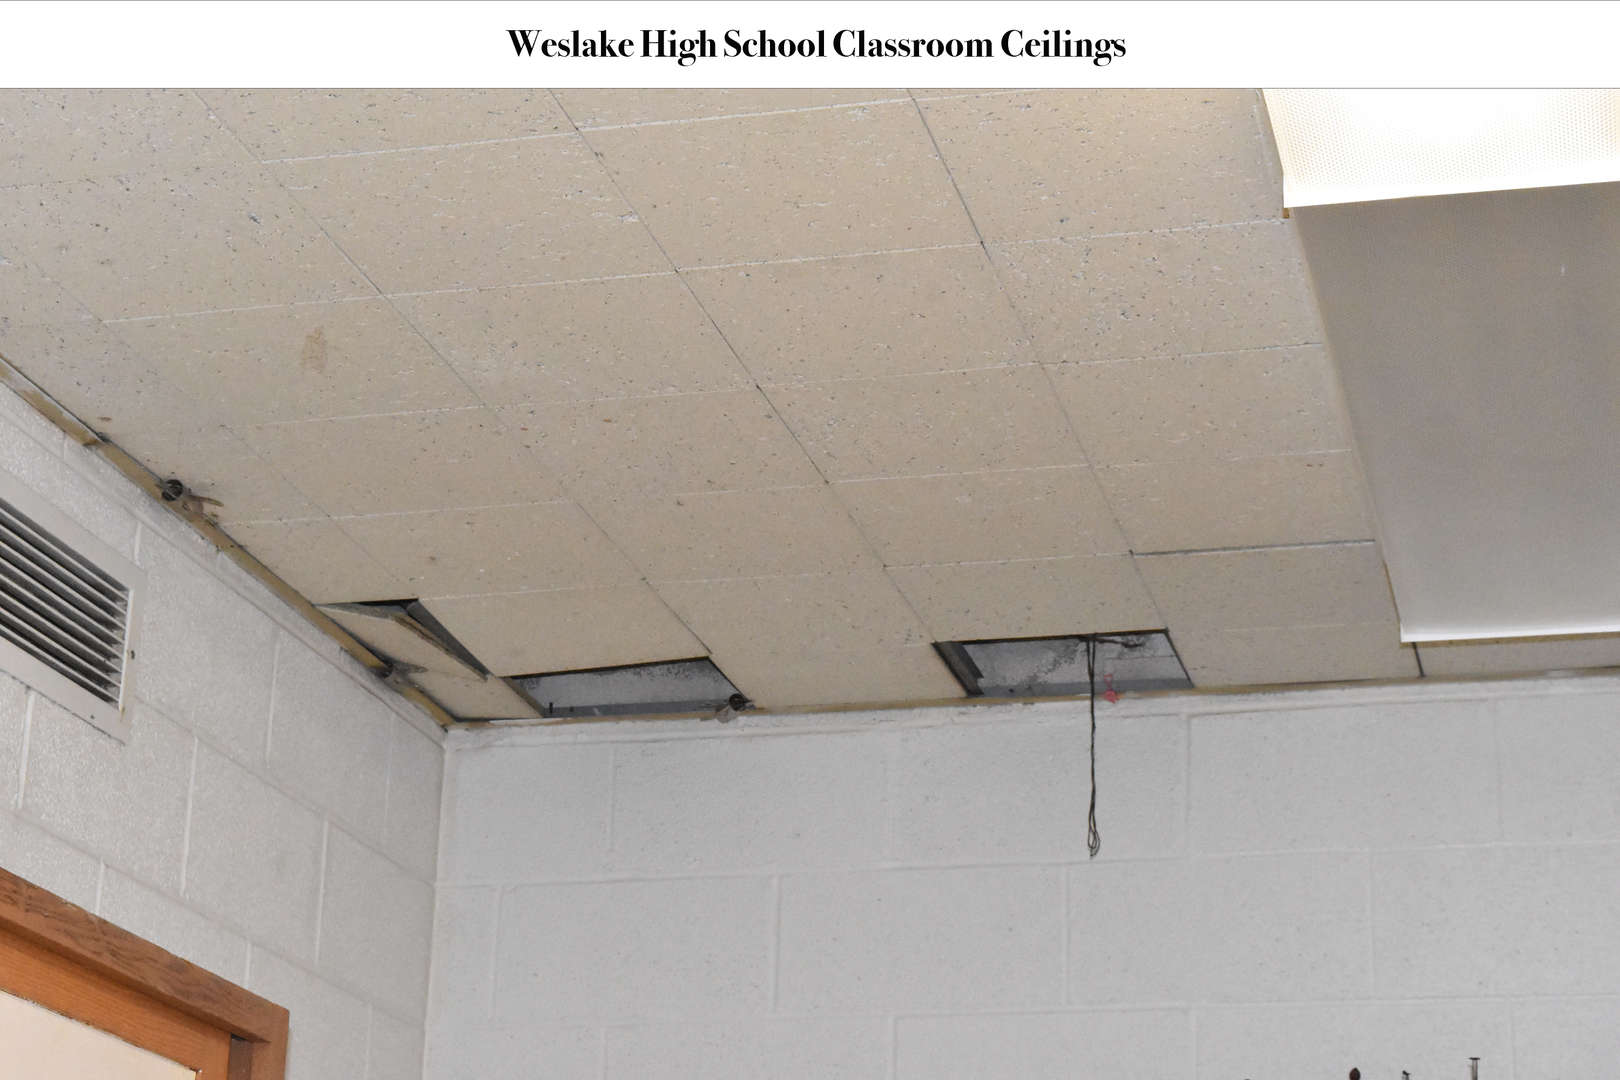 WHS Ceilings with tiles missing